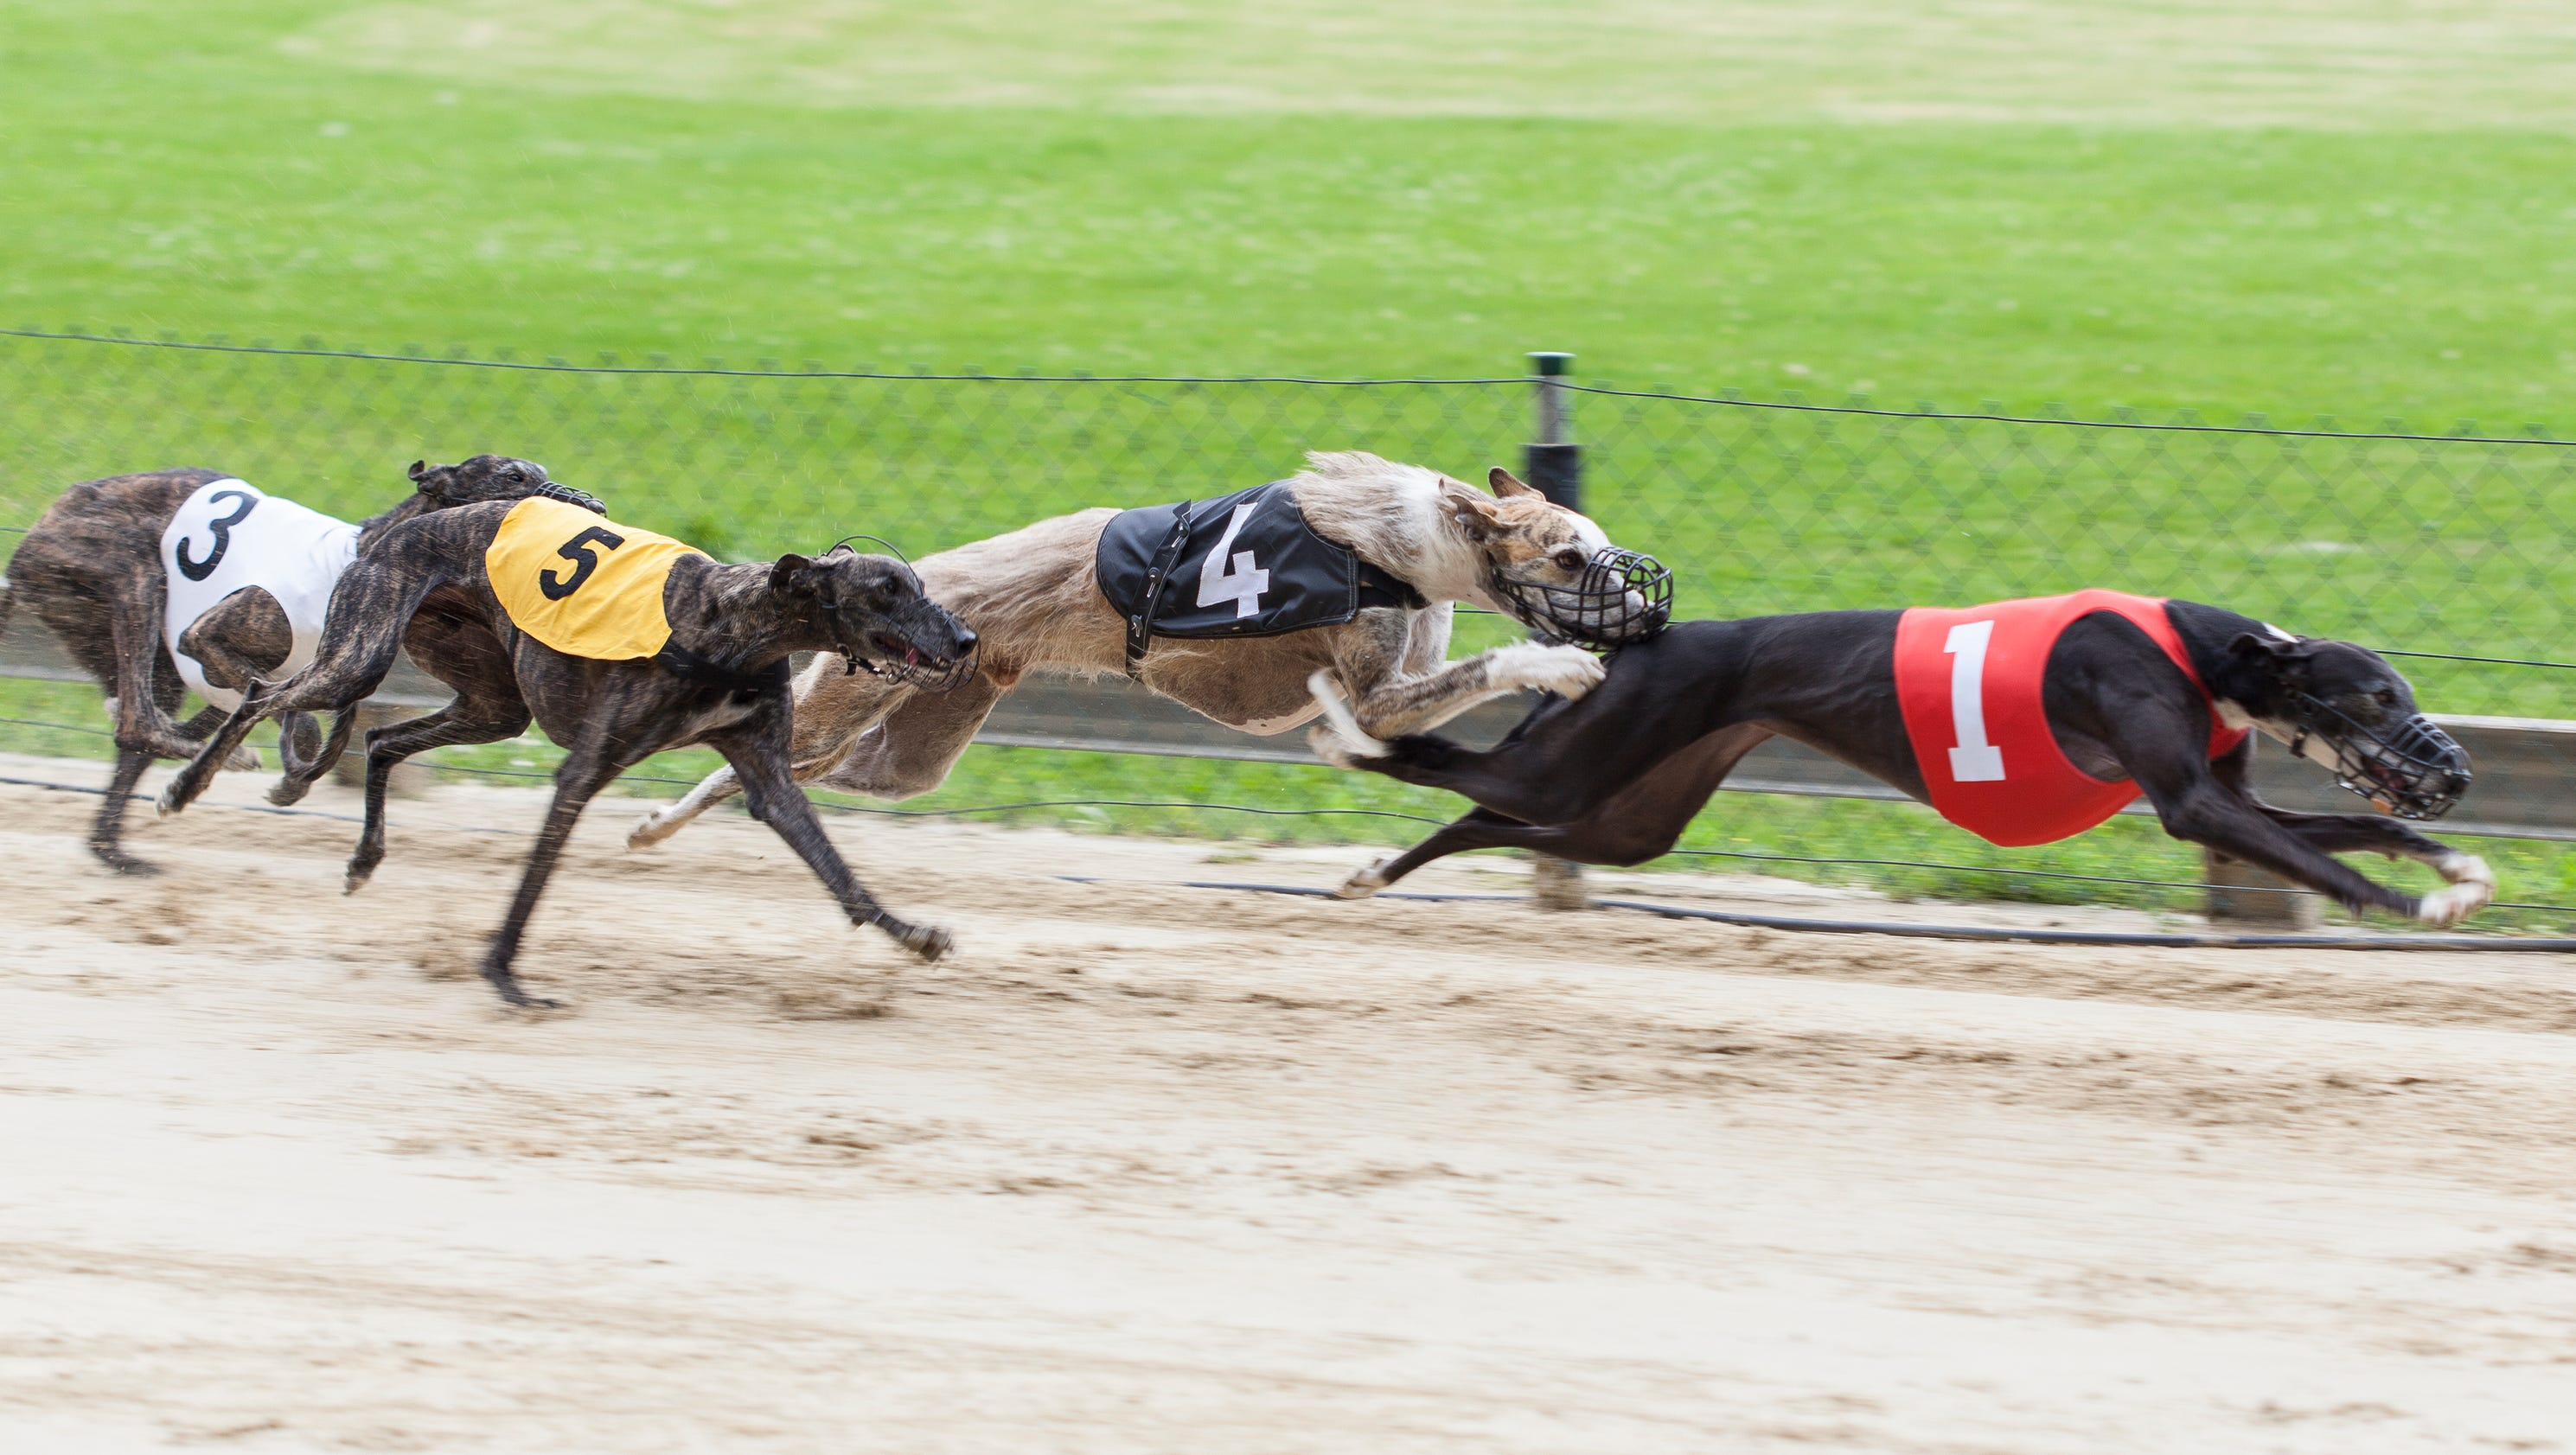 Where Is Greyhound Racing Legal